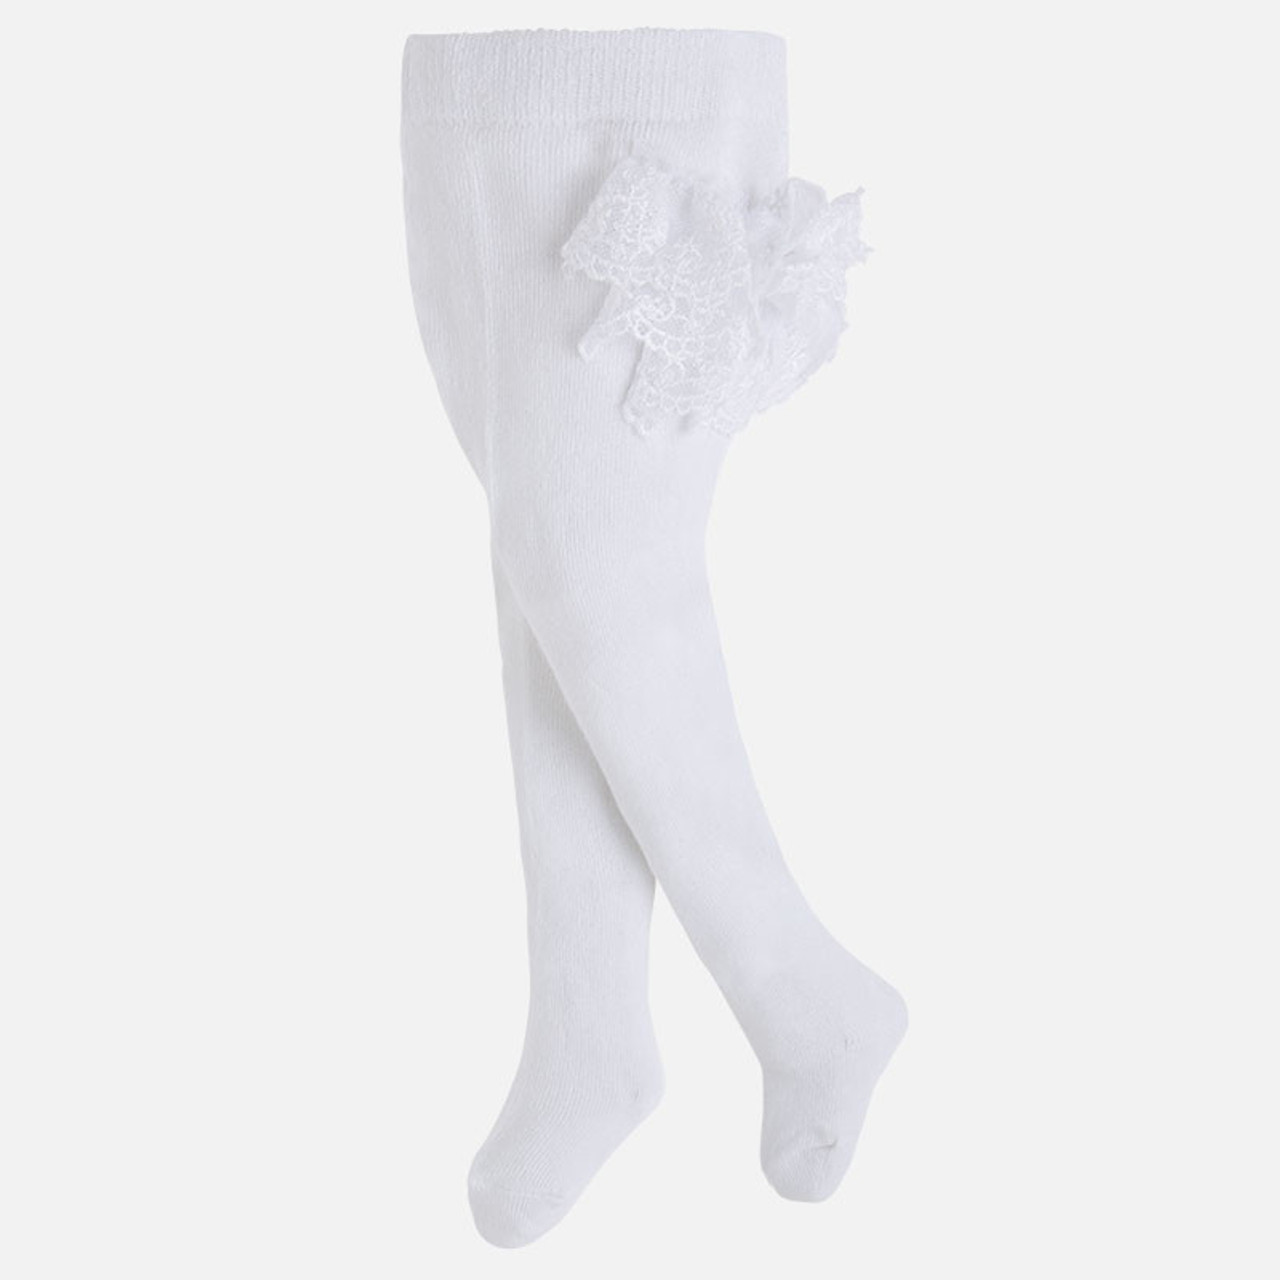 e9ef2c8a77e99 Mayoral Baby Girls Frilly Dress Tights - Natural - Two Birdees